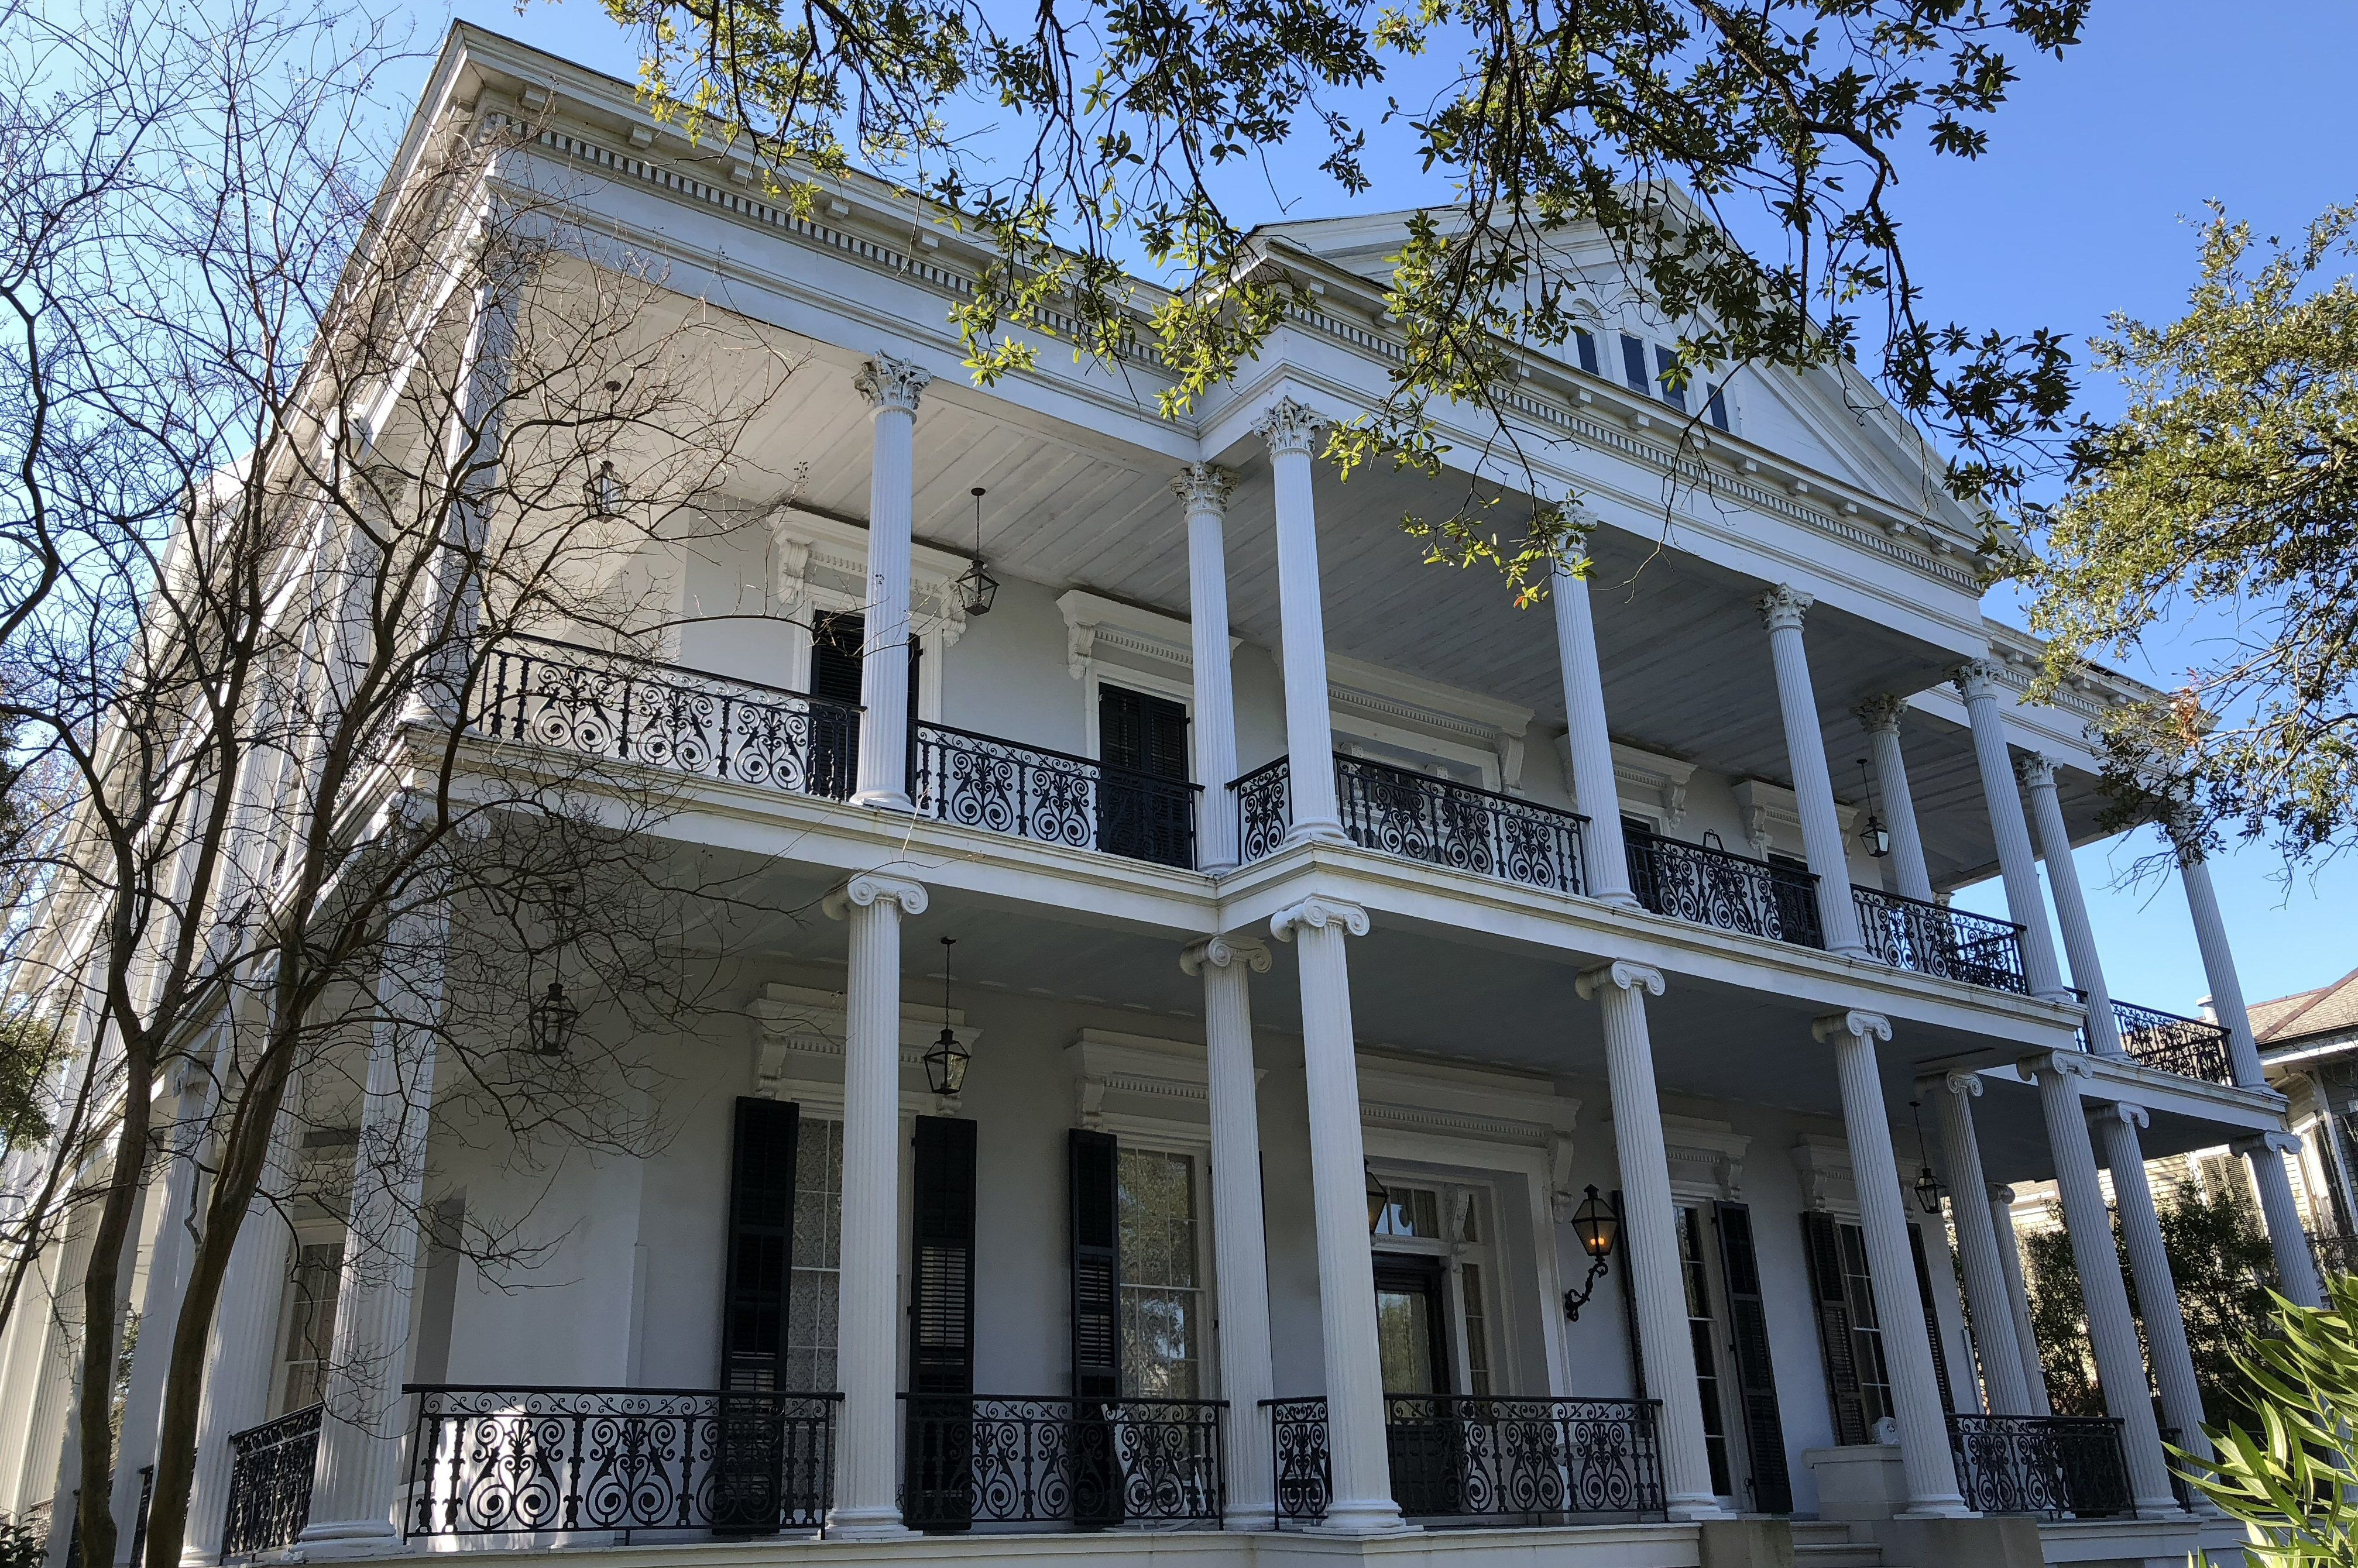 two story grand house with two porches with columns